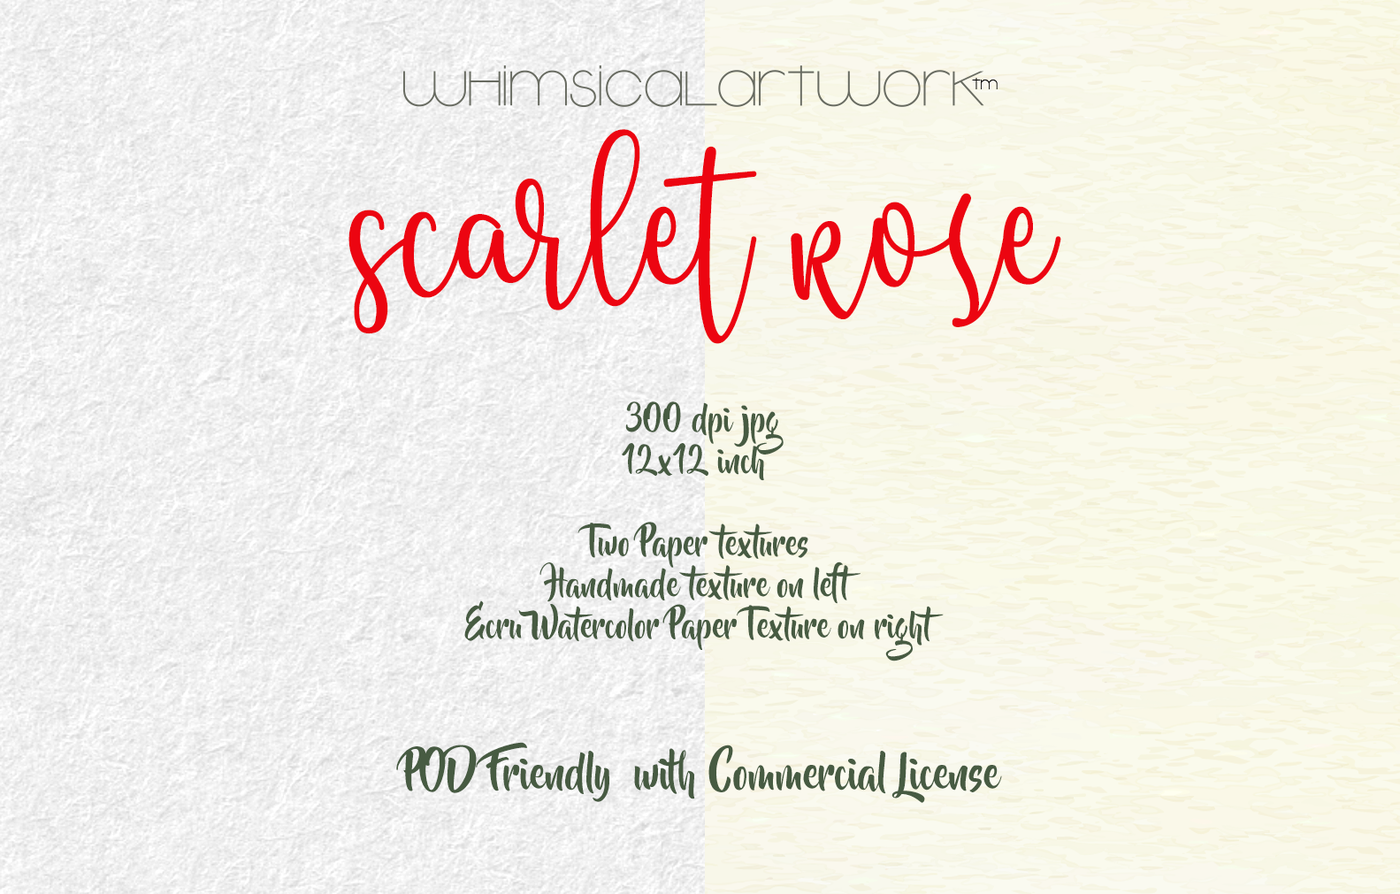 Scarlet Rose Watercolor Floral Elements By Whimsicalartwork